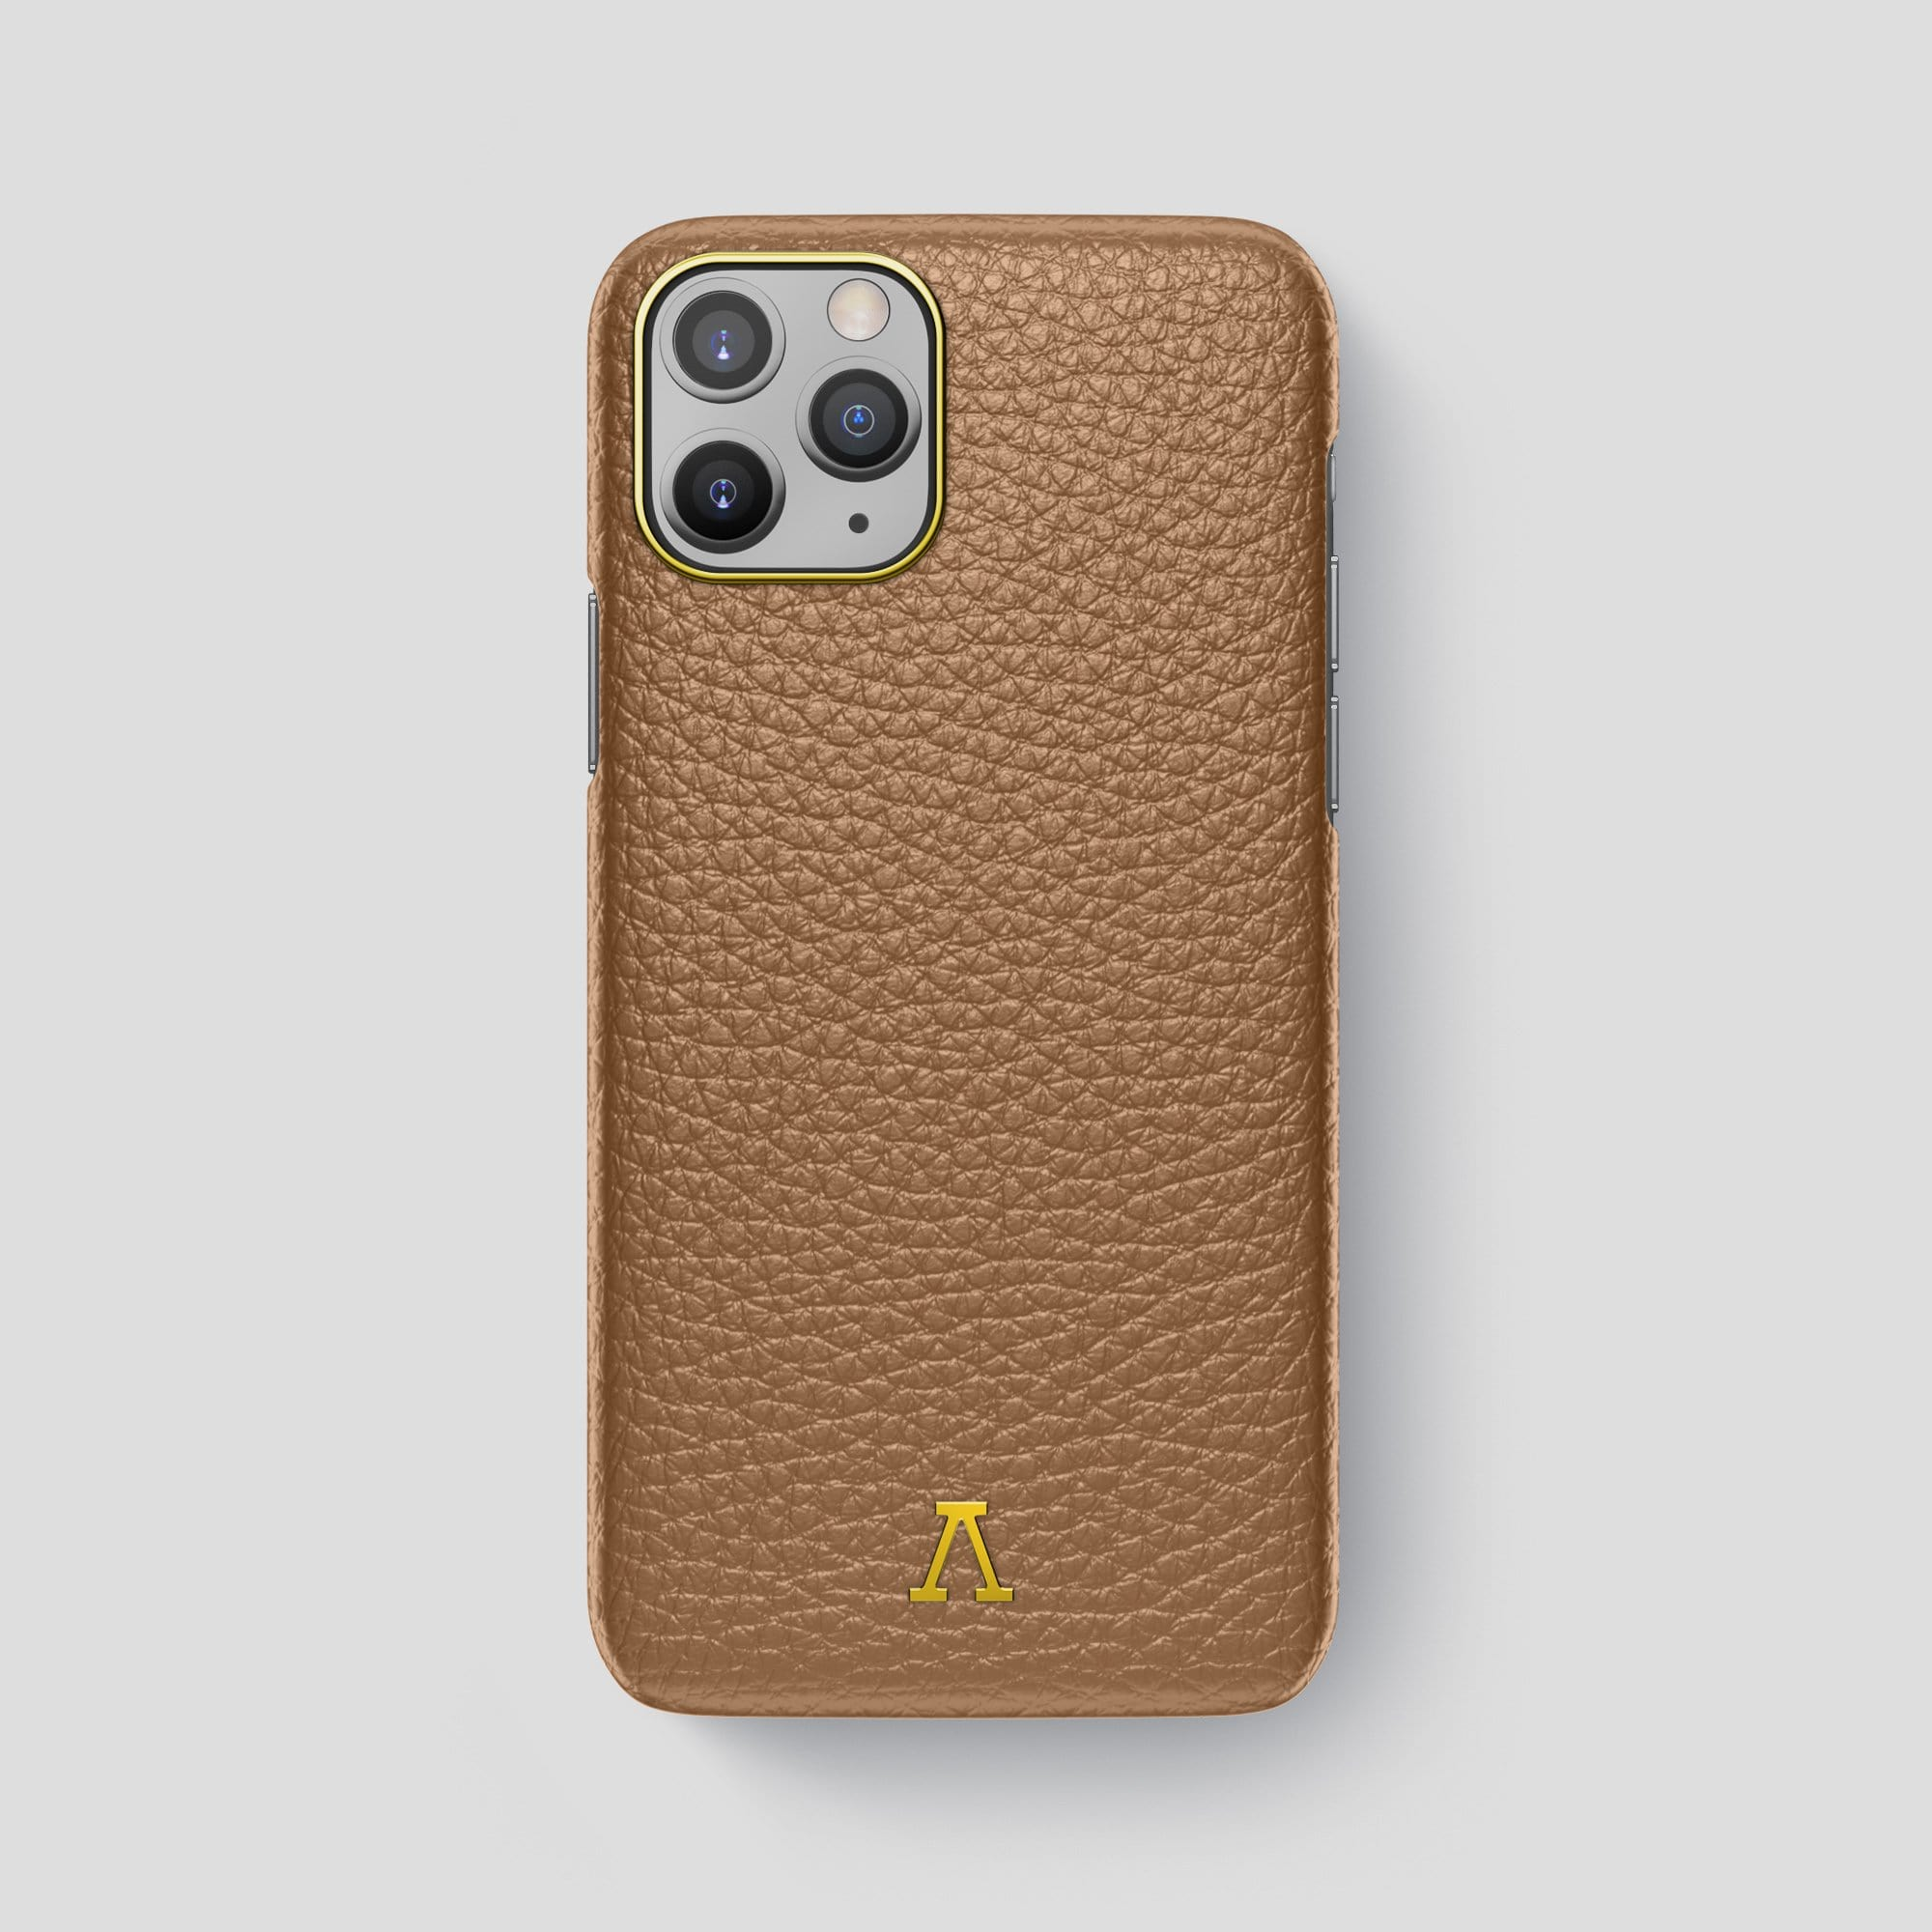 iPhone 11 Pro Max Classic Case Calf